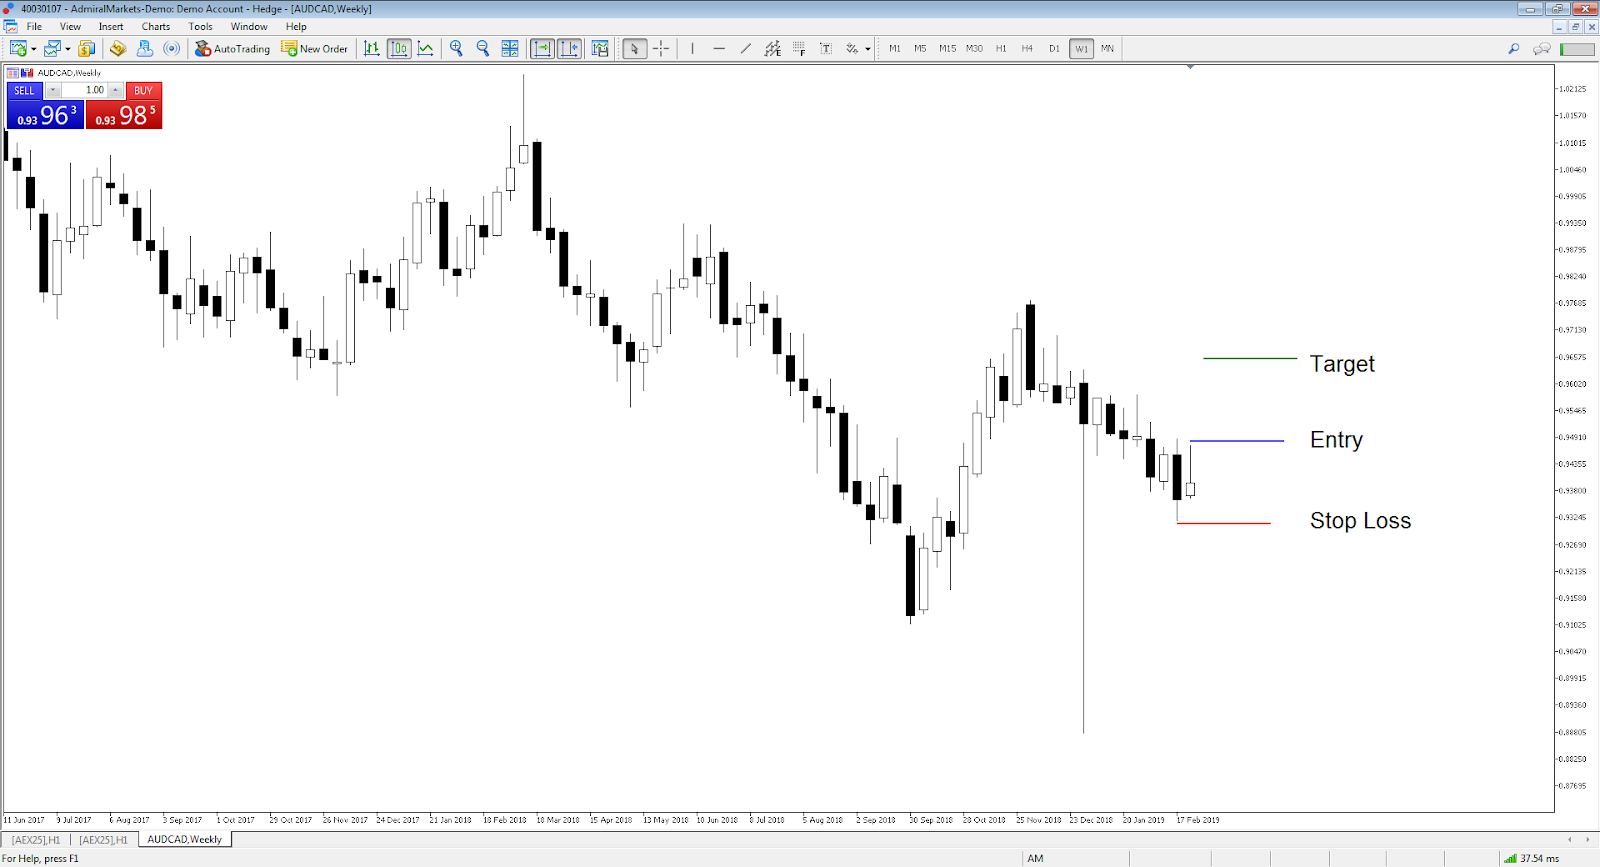 AUD/CAD weekly chart